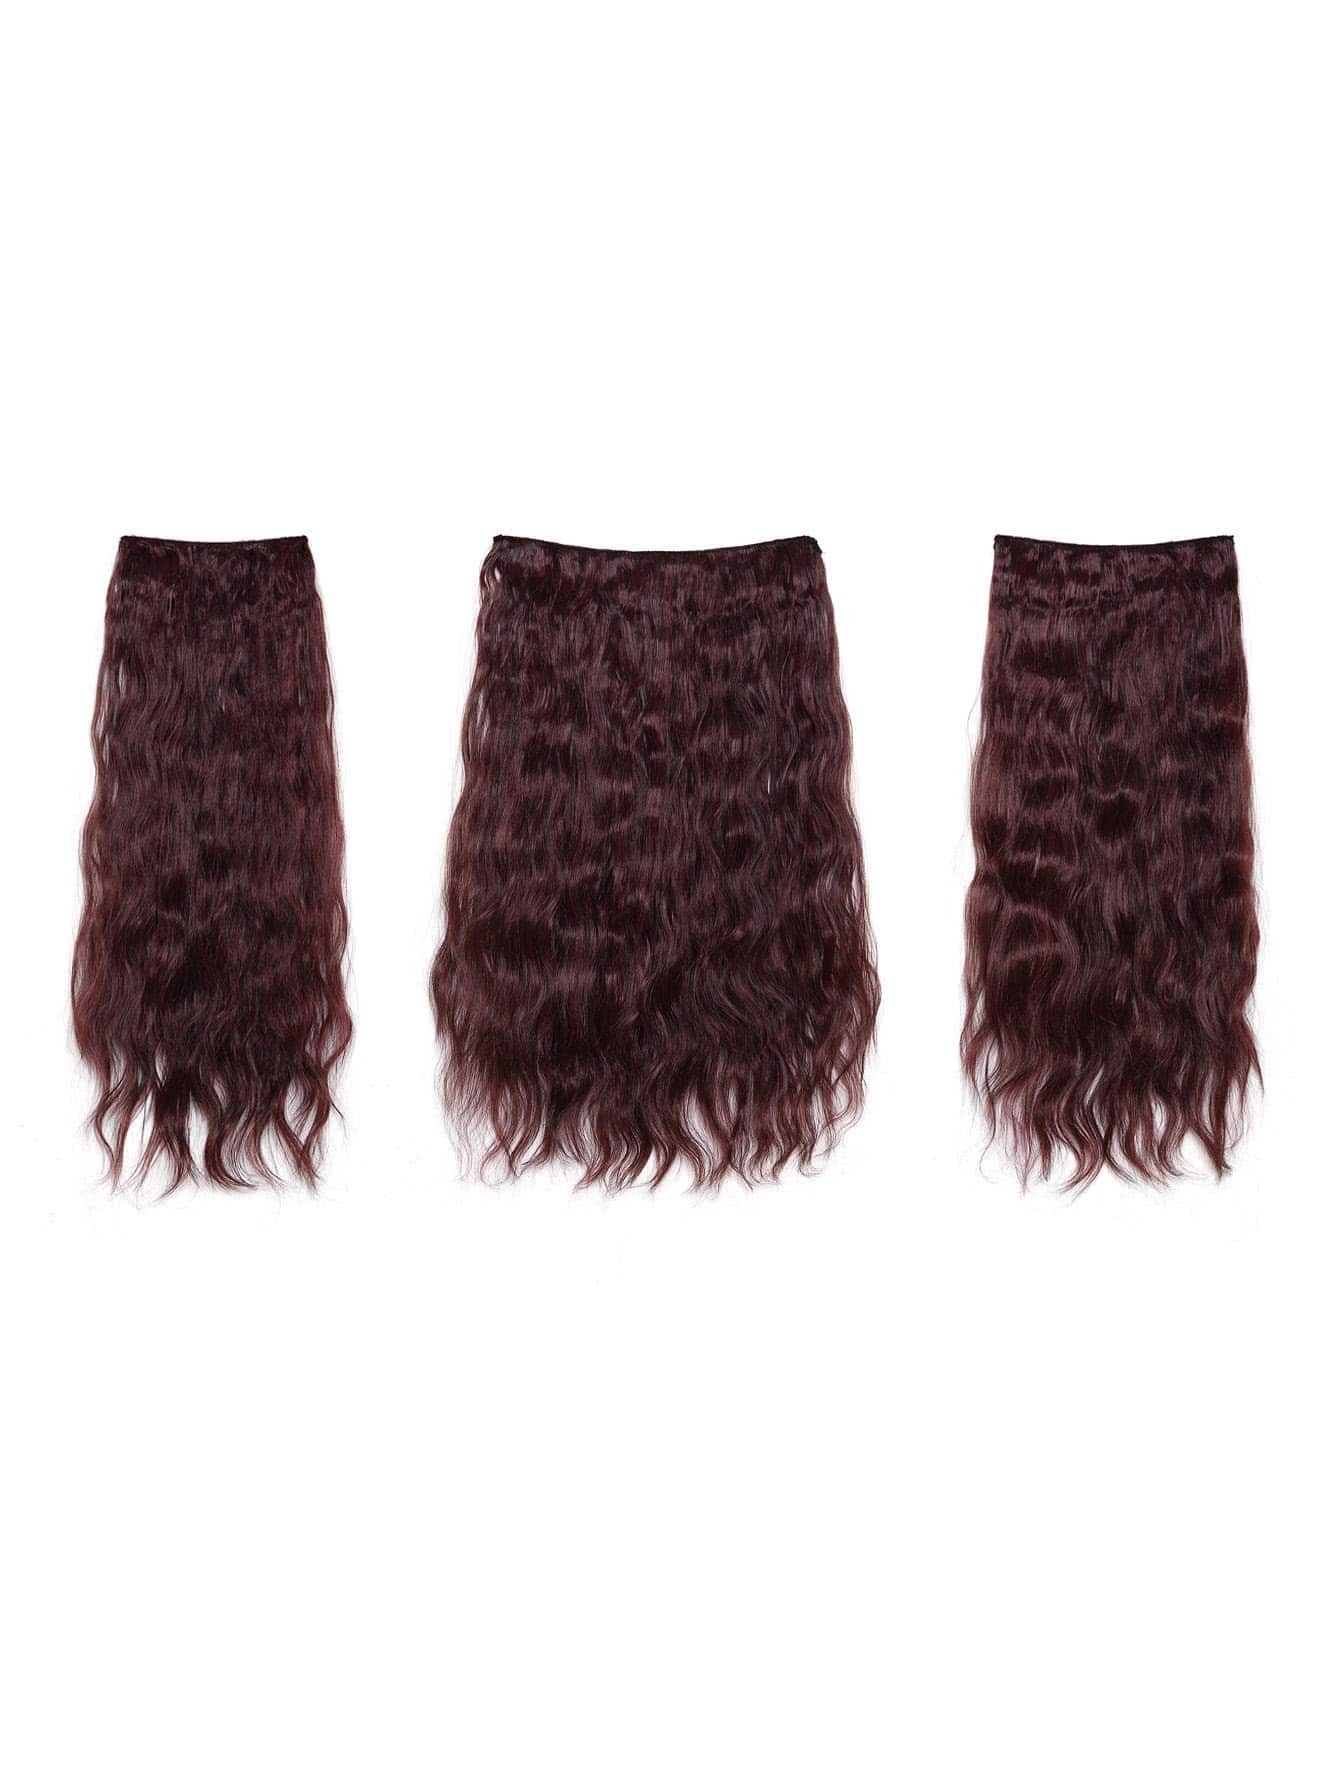 Image of Black & Burgundy Clip In Curly Hair Extension 3pcs